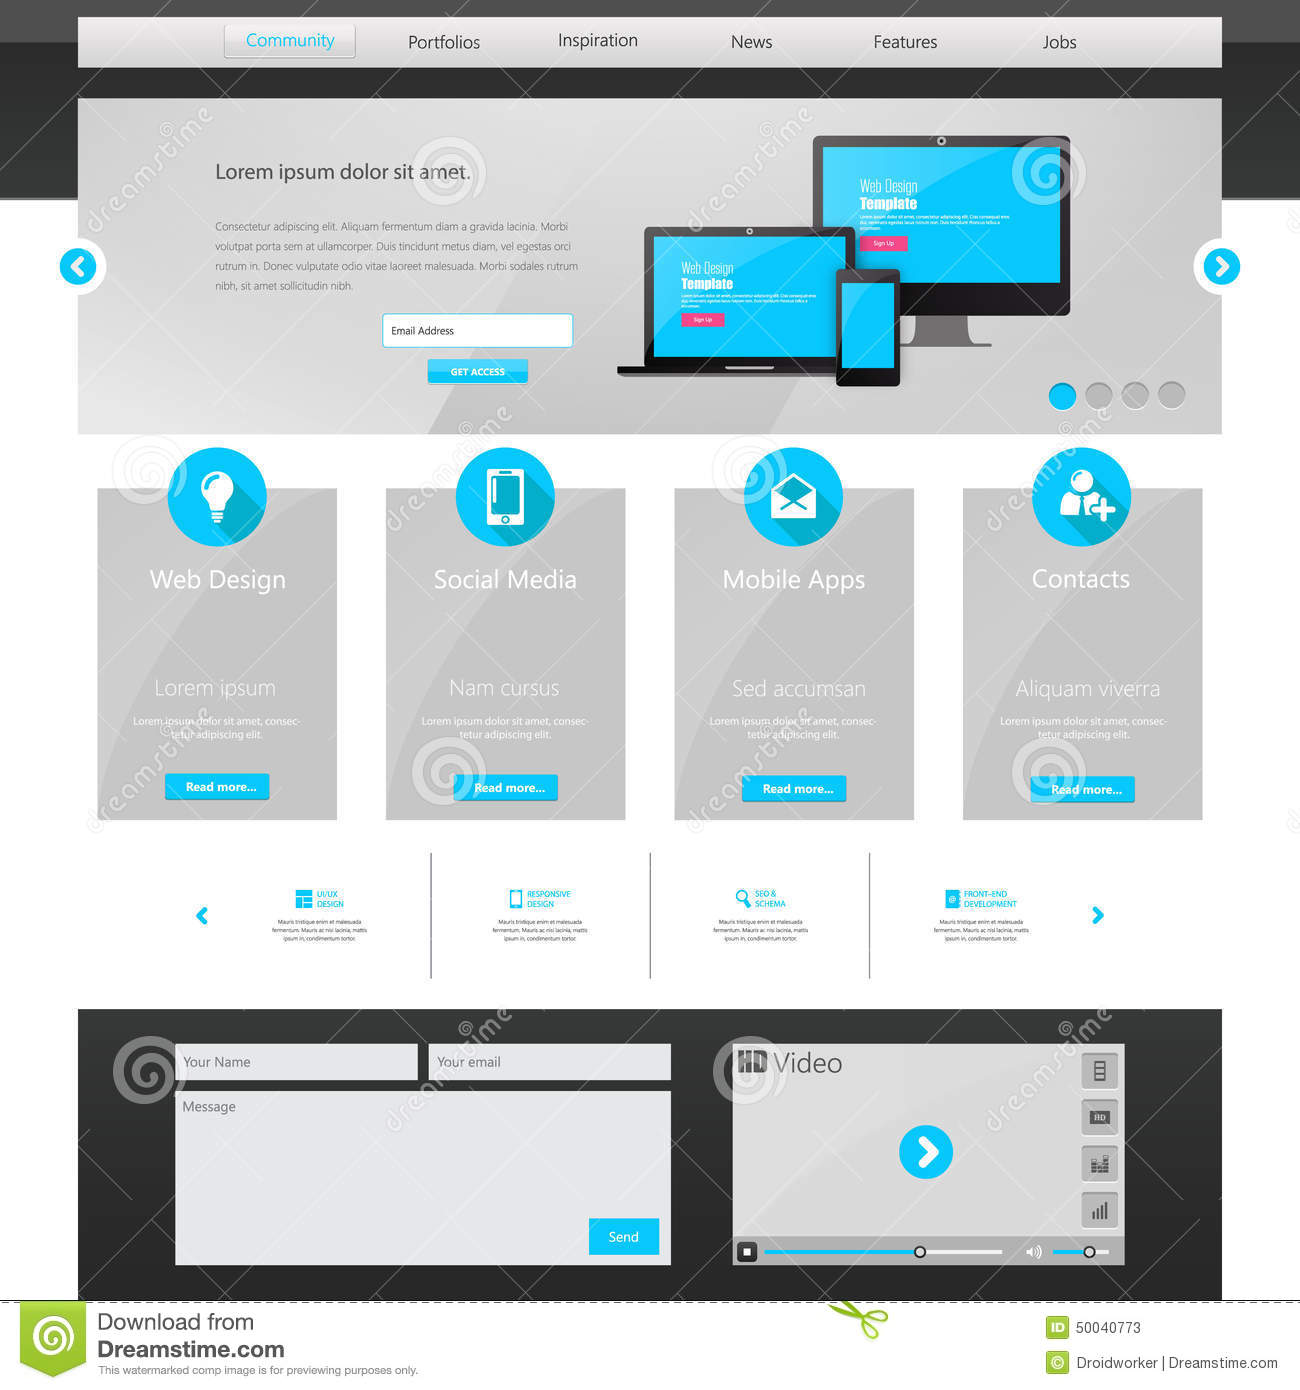 Business website template home page design clean and simple vector illustration stock - Website for home design ...